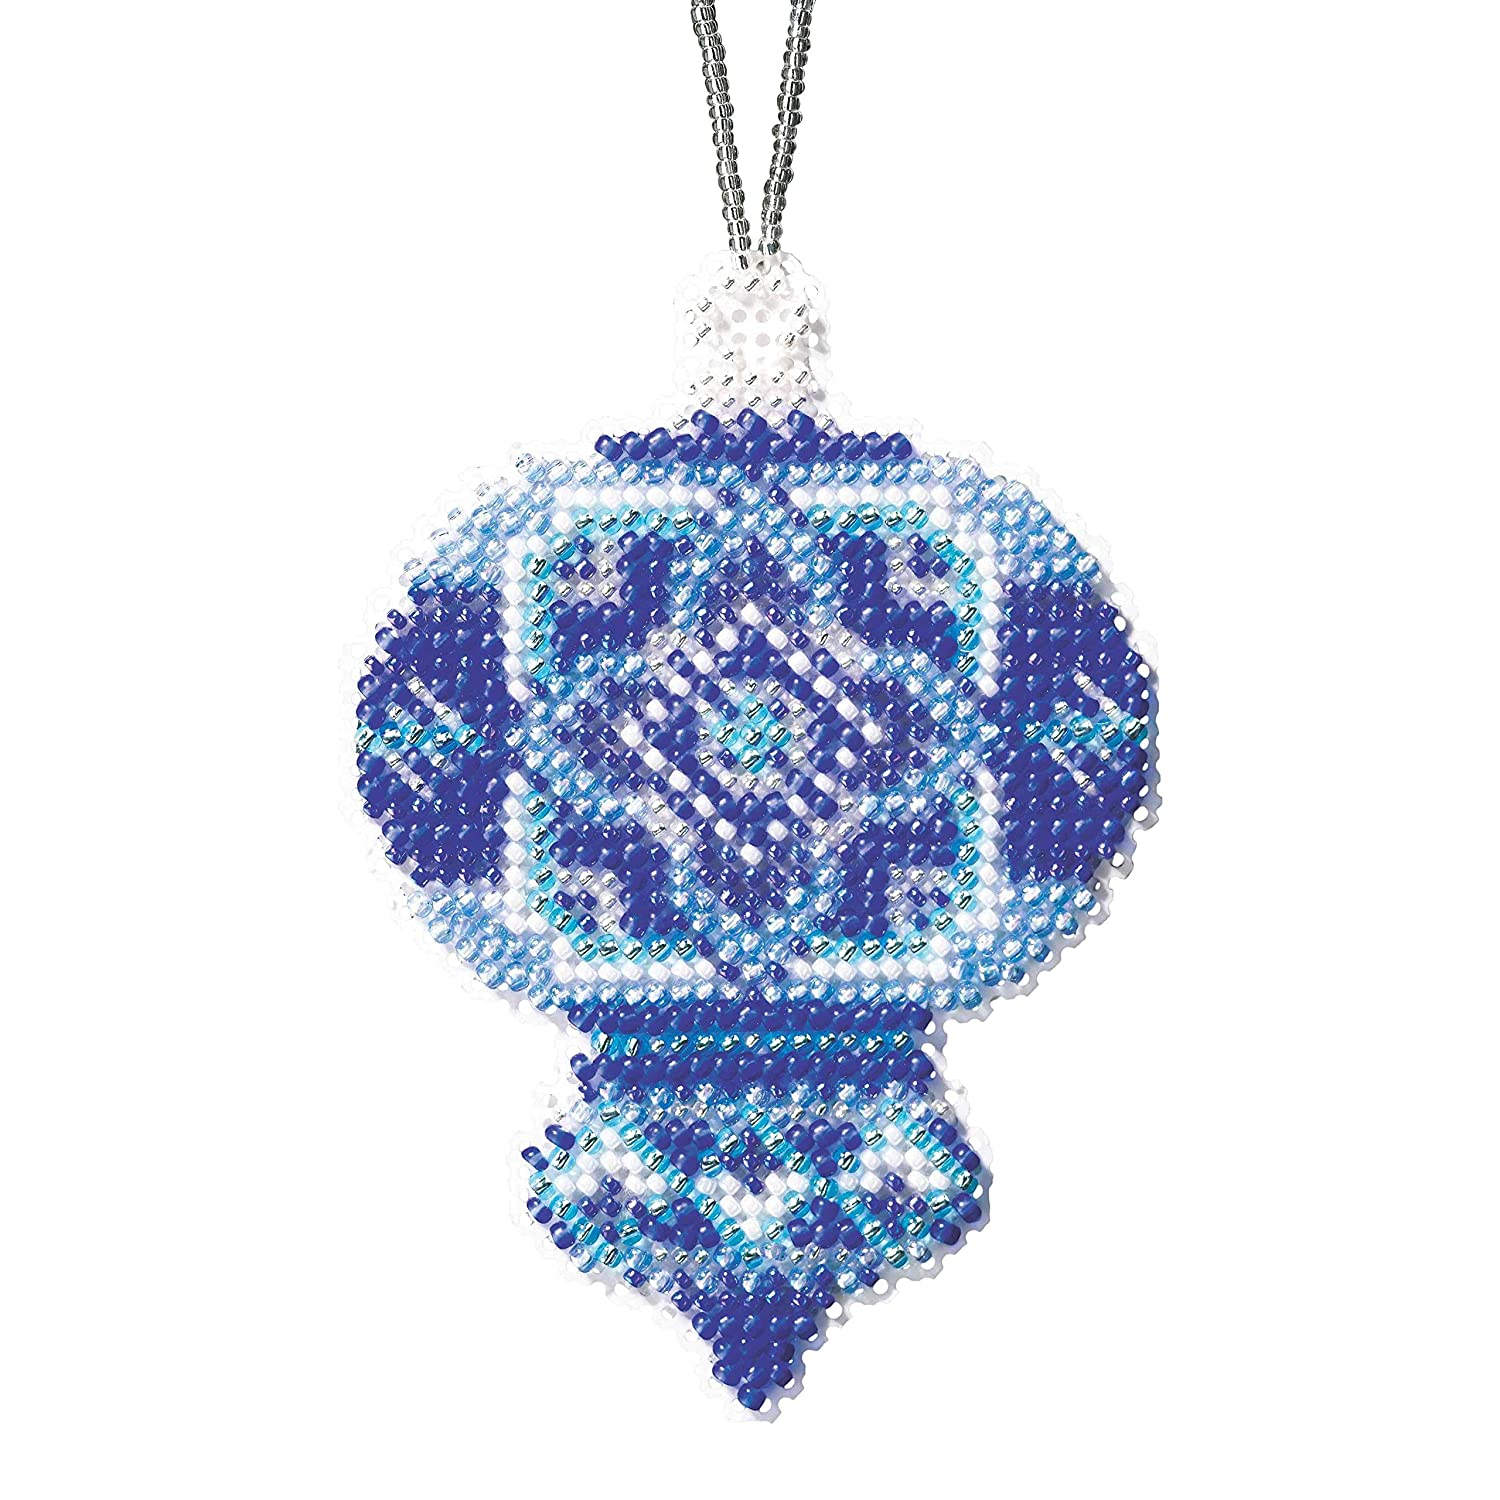 Azure Medallion Beaded Counted Cross Stitch Ornament Kit Mill Hill 2019 Beaded Holiday MH211912